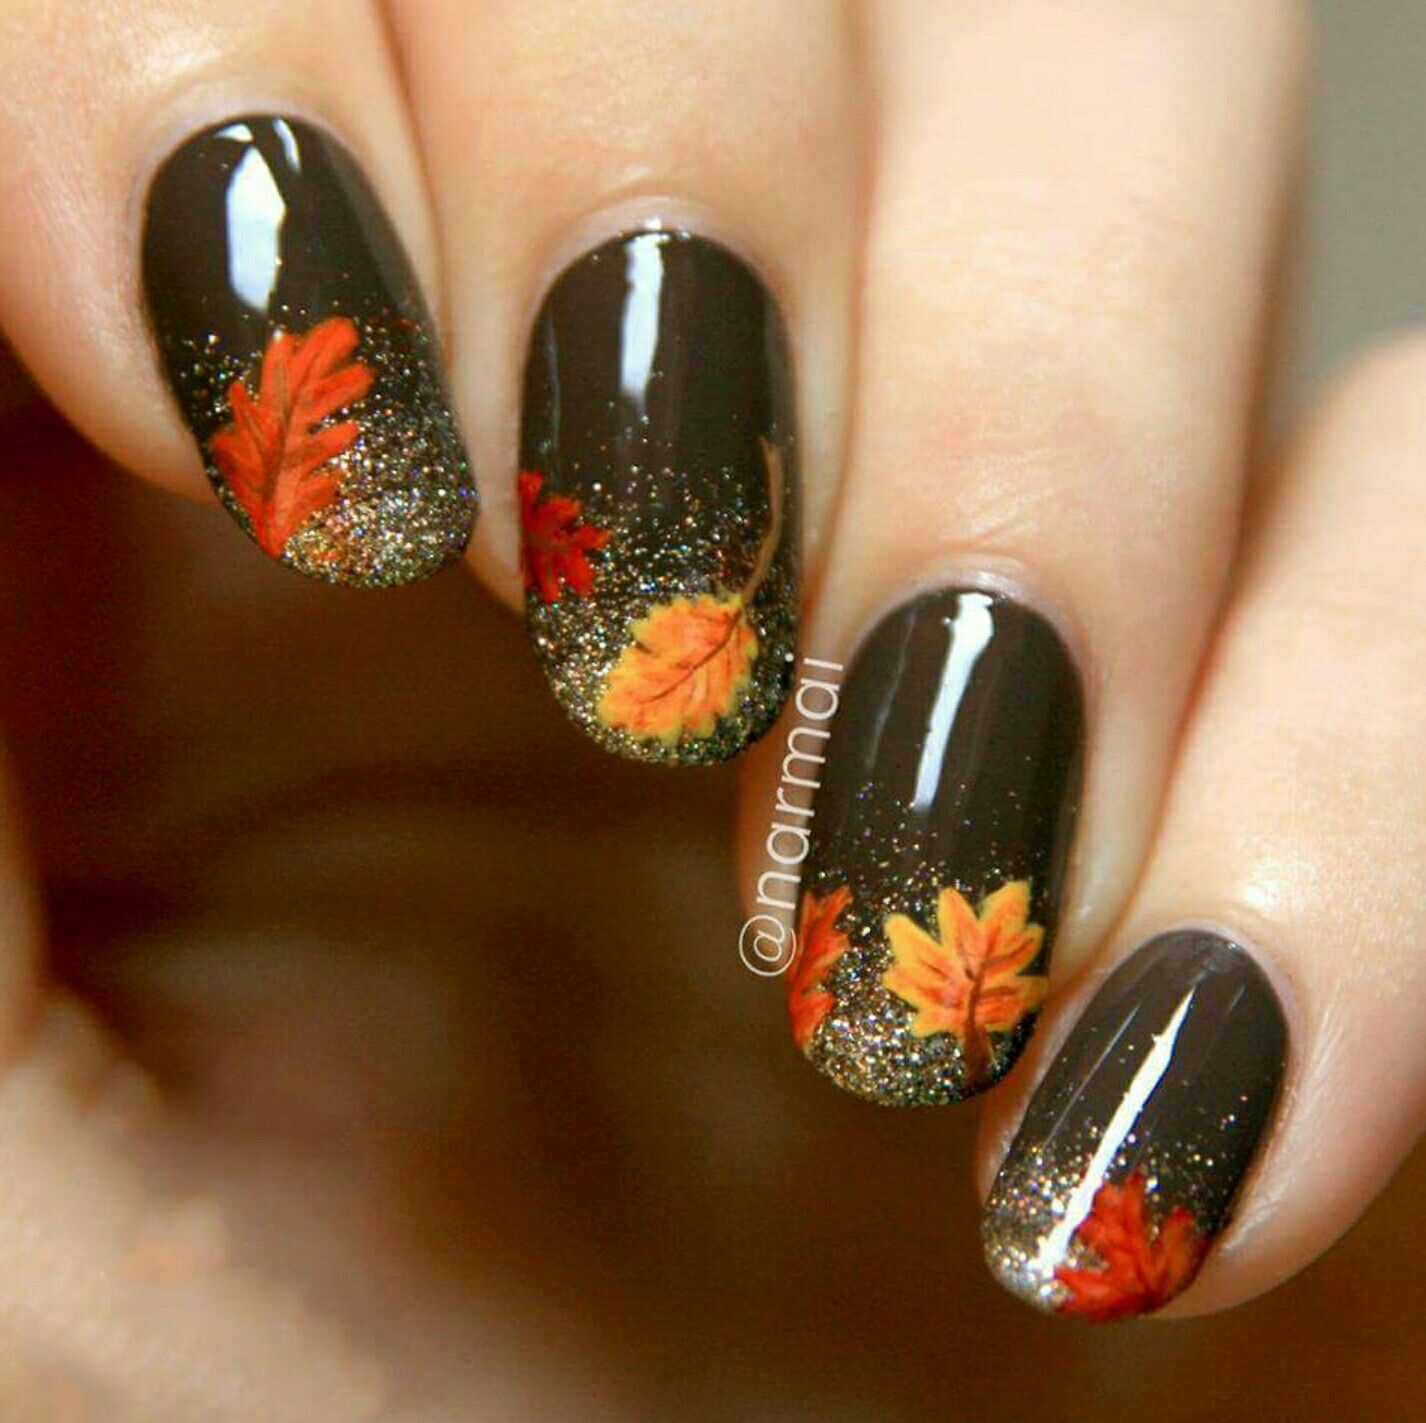 Pin by Jennifer Cooper on Get Nailed!   Pinterest   Manicure and ...